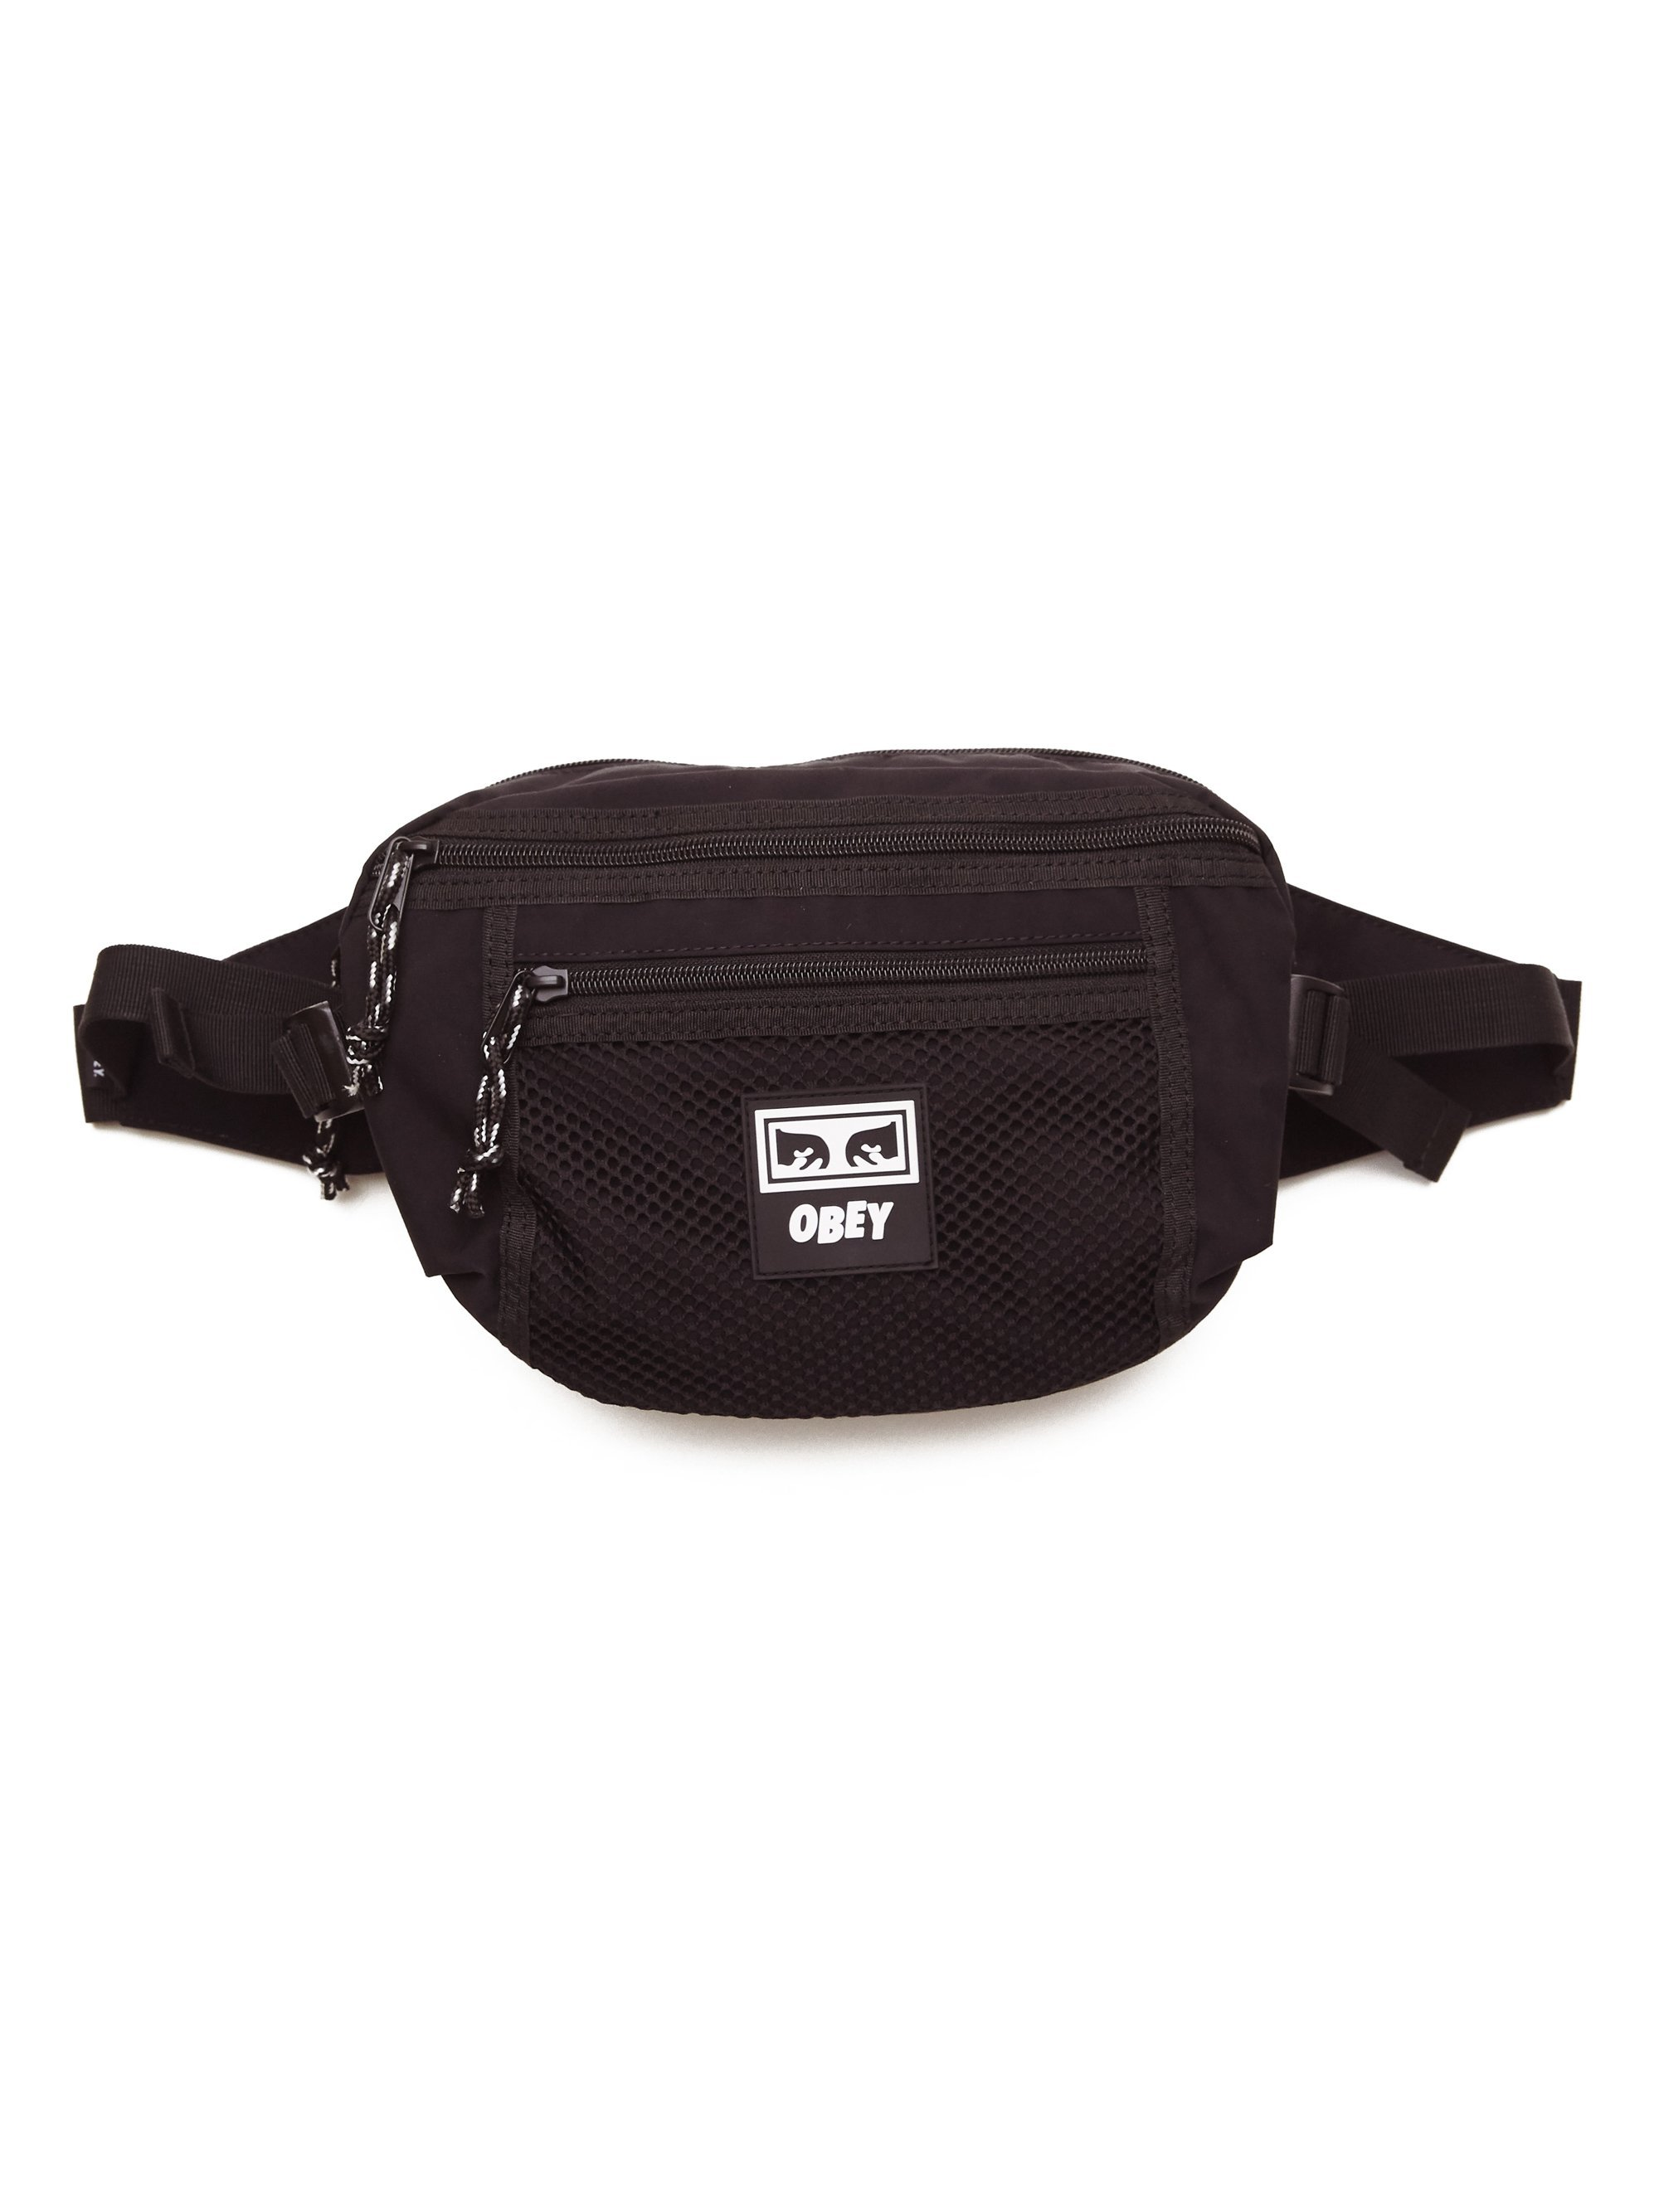 OBEY_Conditions_Waist_Bag_100010108_BLK_1_2000x.jpg